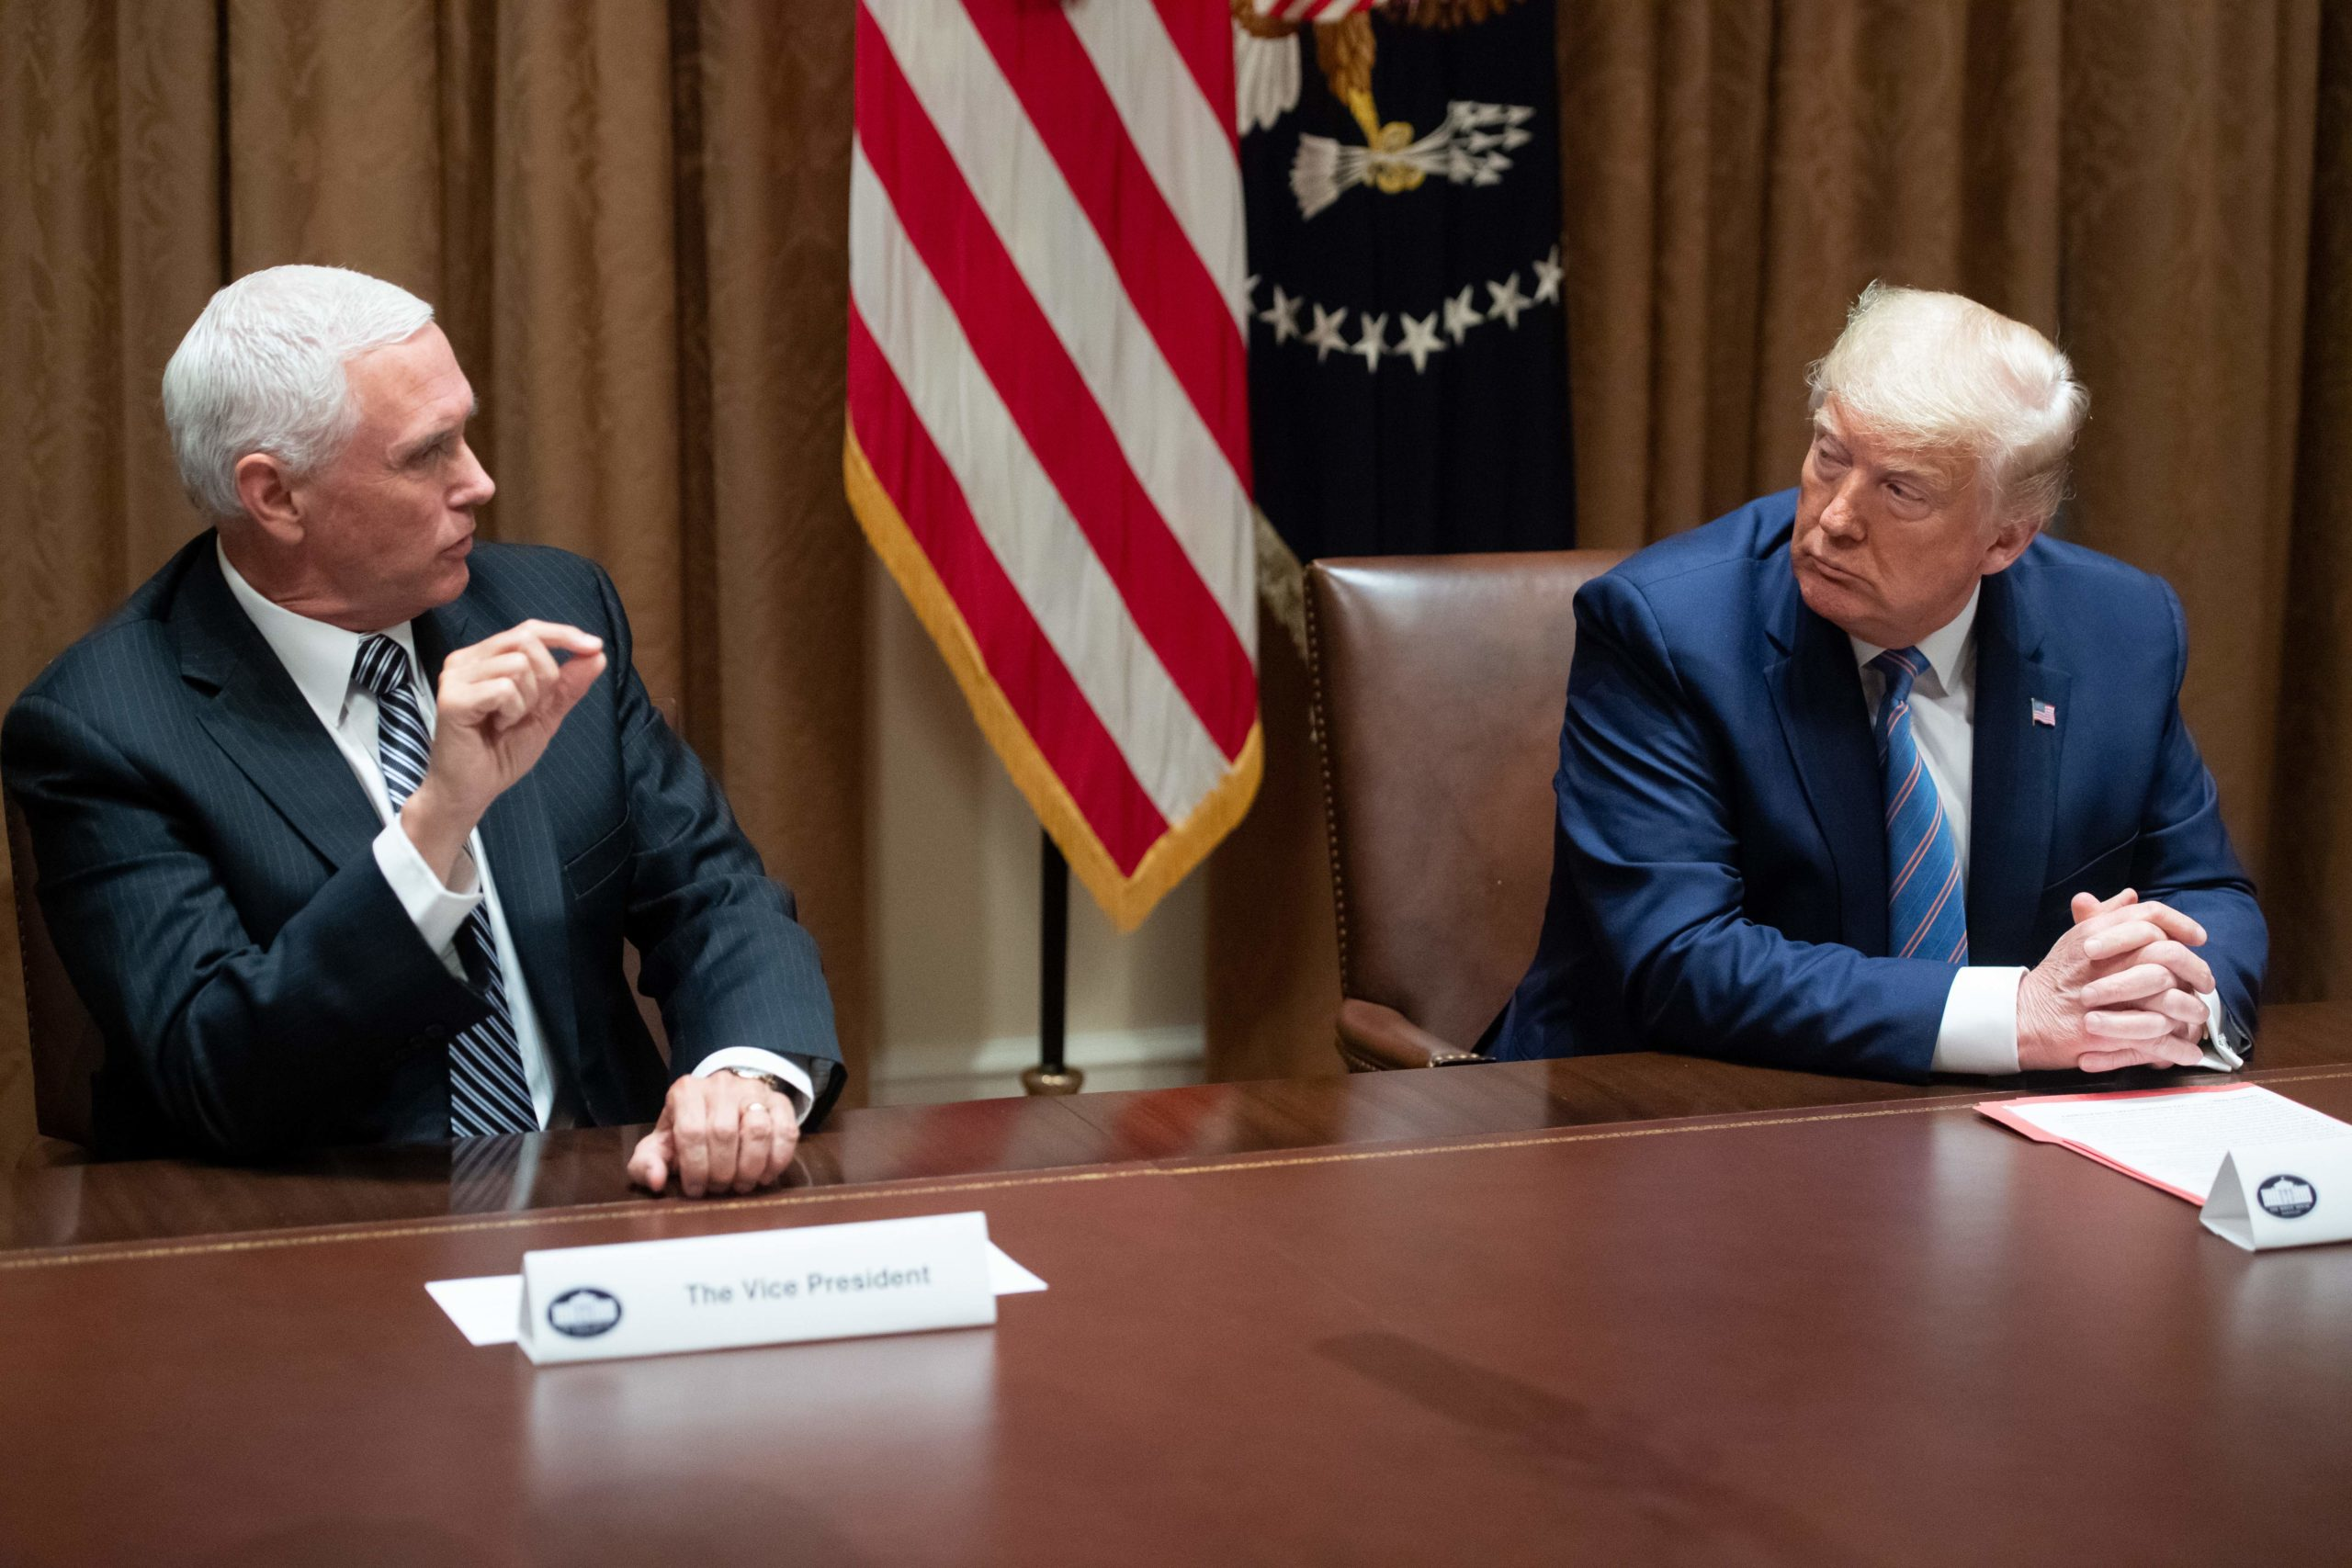 Vice President Mike Pence with US President Donald Trump